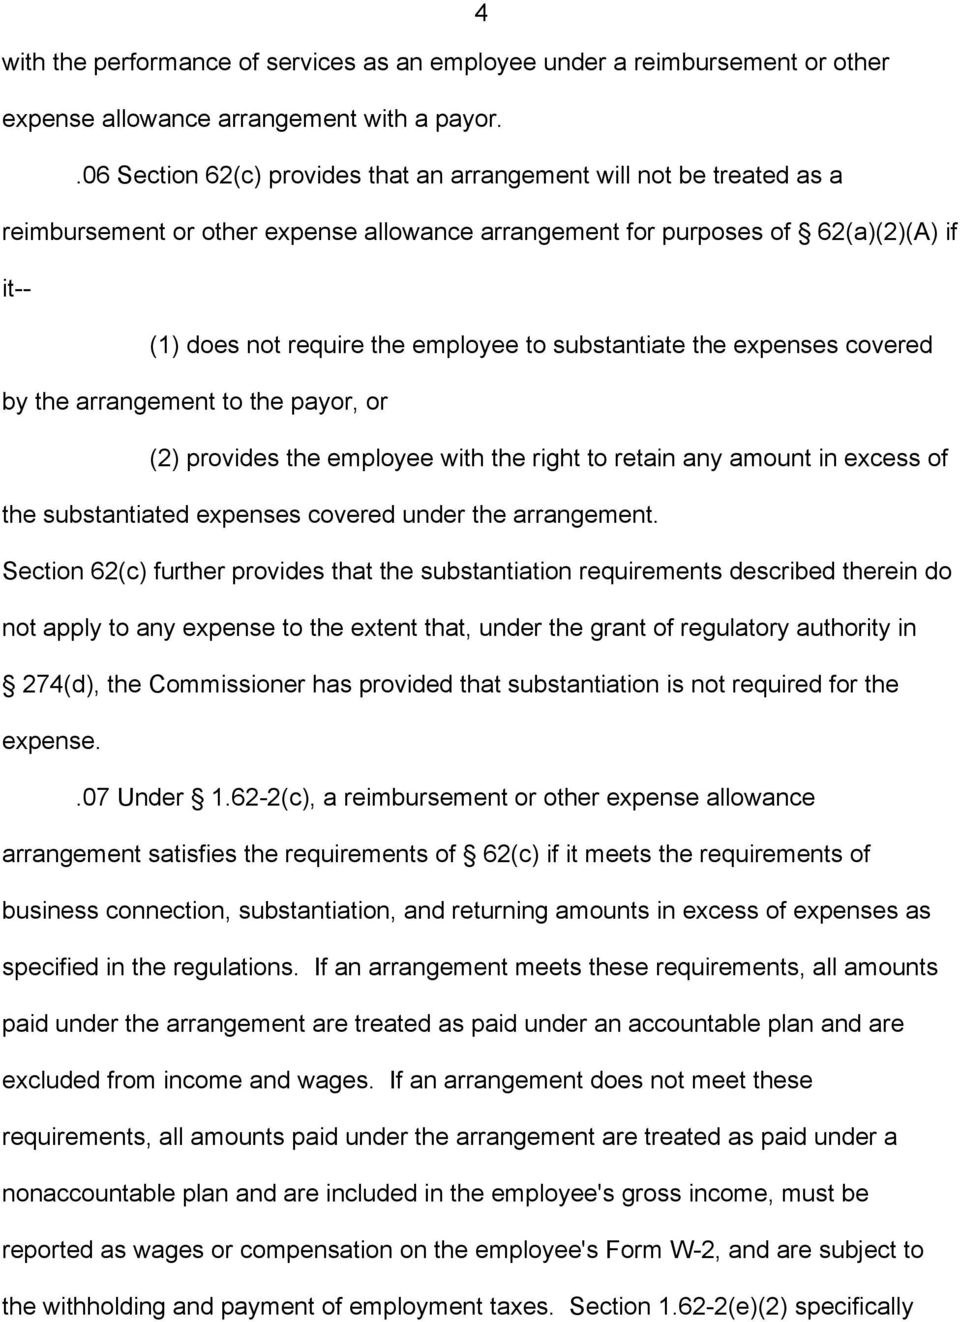 substantiate the expenses covered by the arrangement to the payor, or (2) provides the employee with the right to retain any amount in excess of the substantiated expenses covered under the